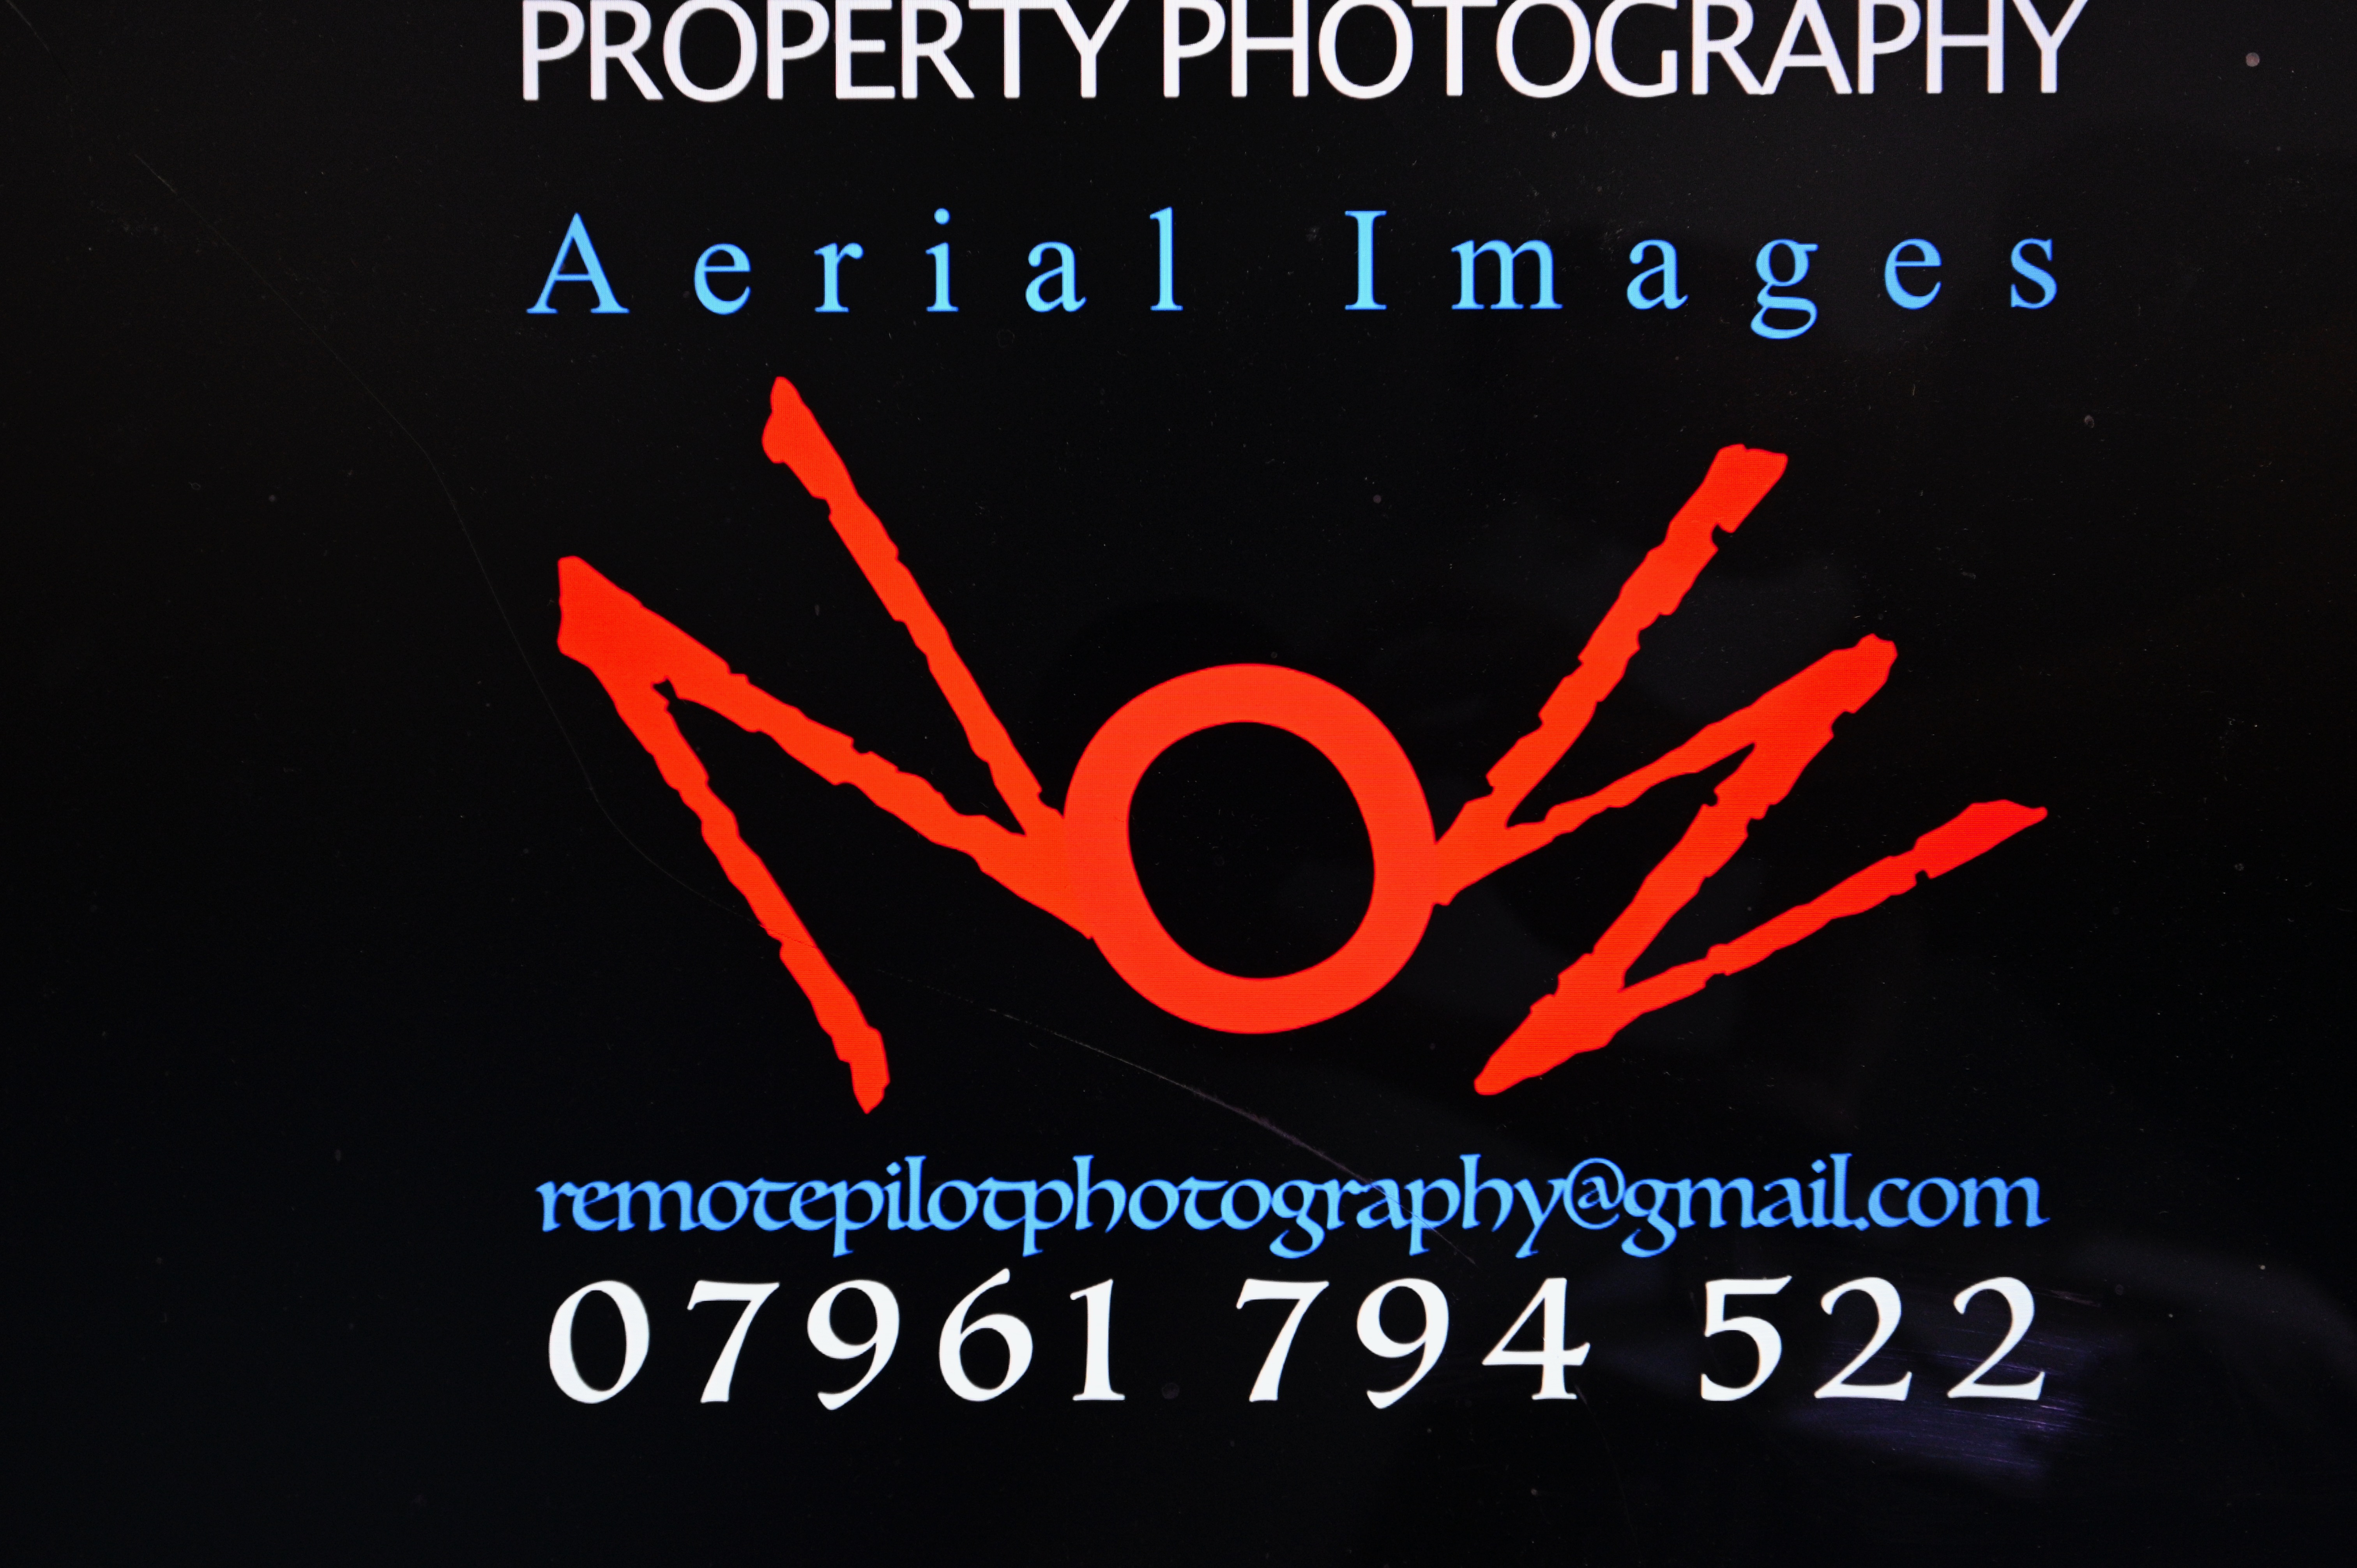 NOW Aerial Images